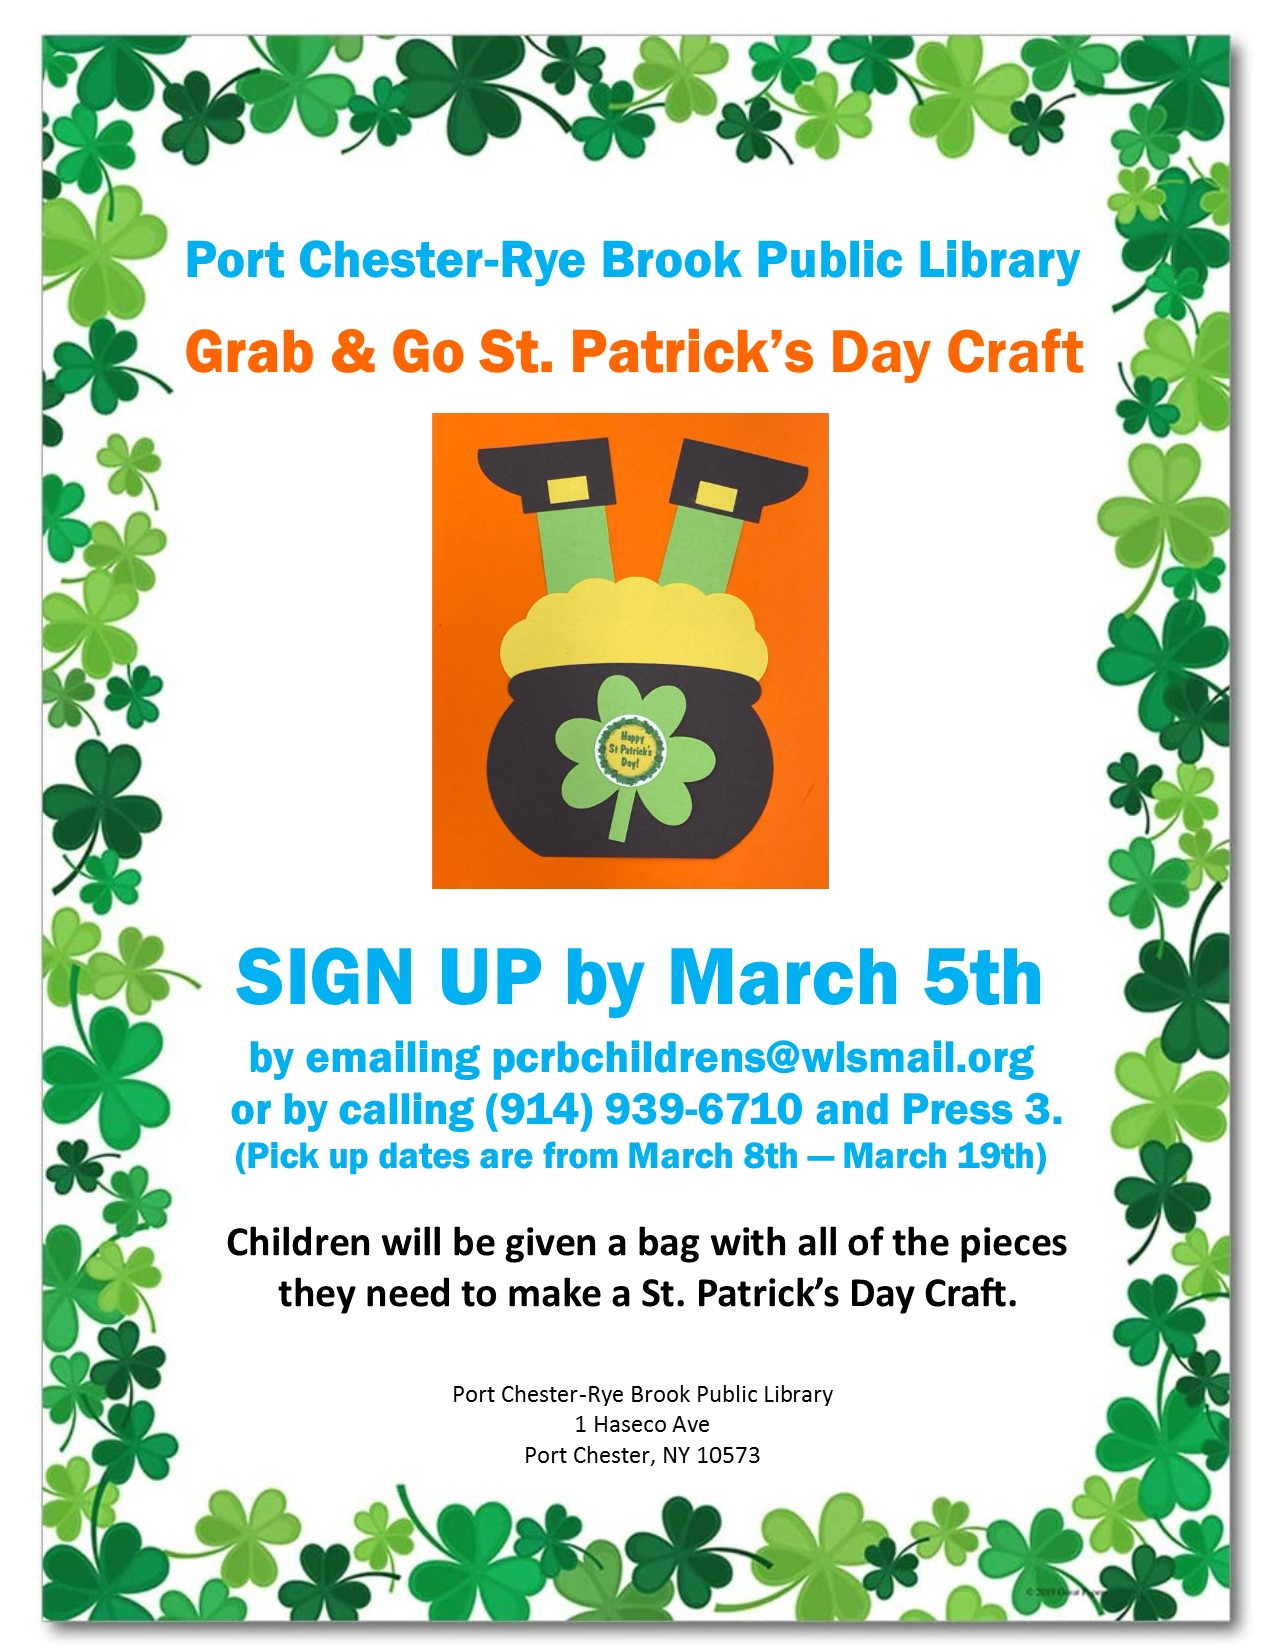 IN PERSON March Grab and Go St. Patrick's Day Craft at Port Chester/Rye Brook Library